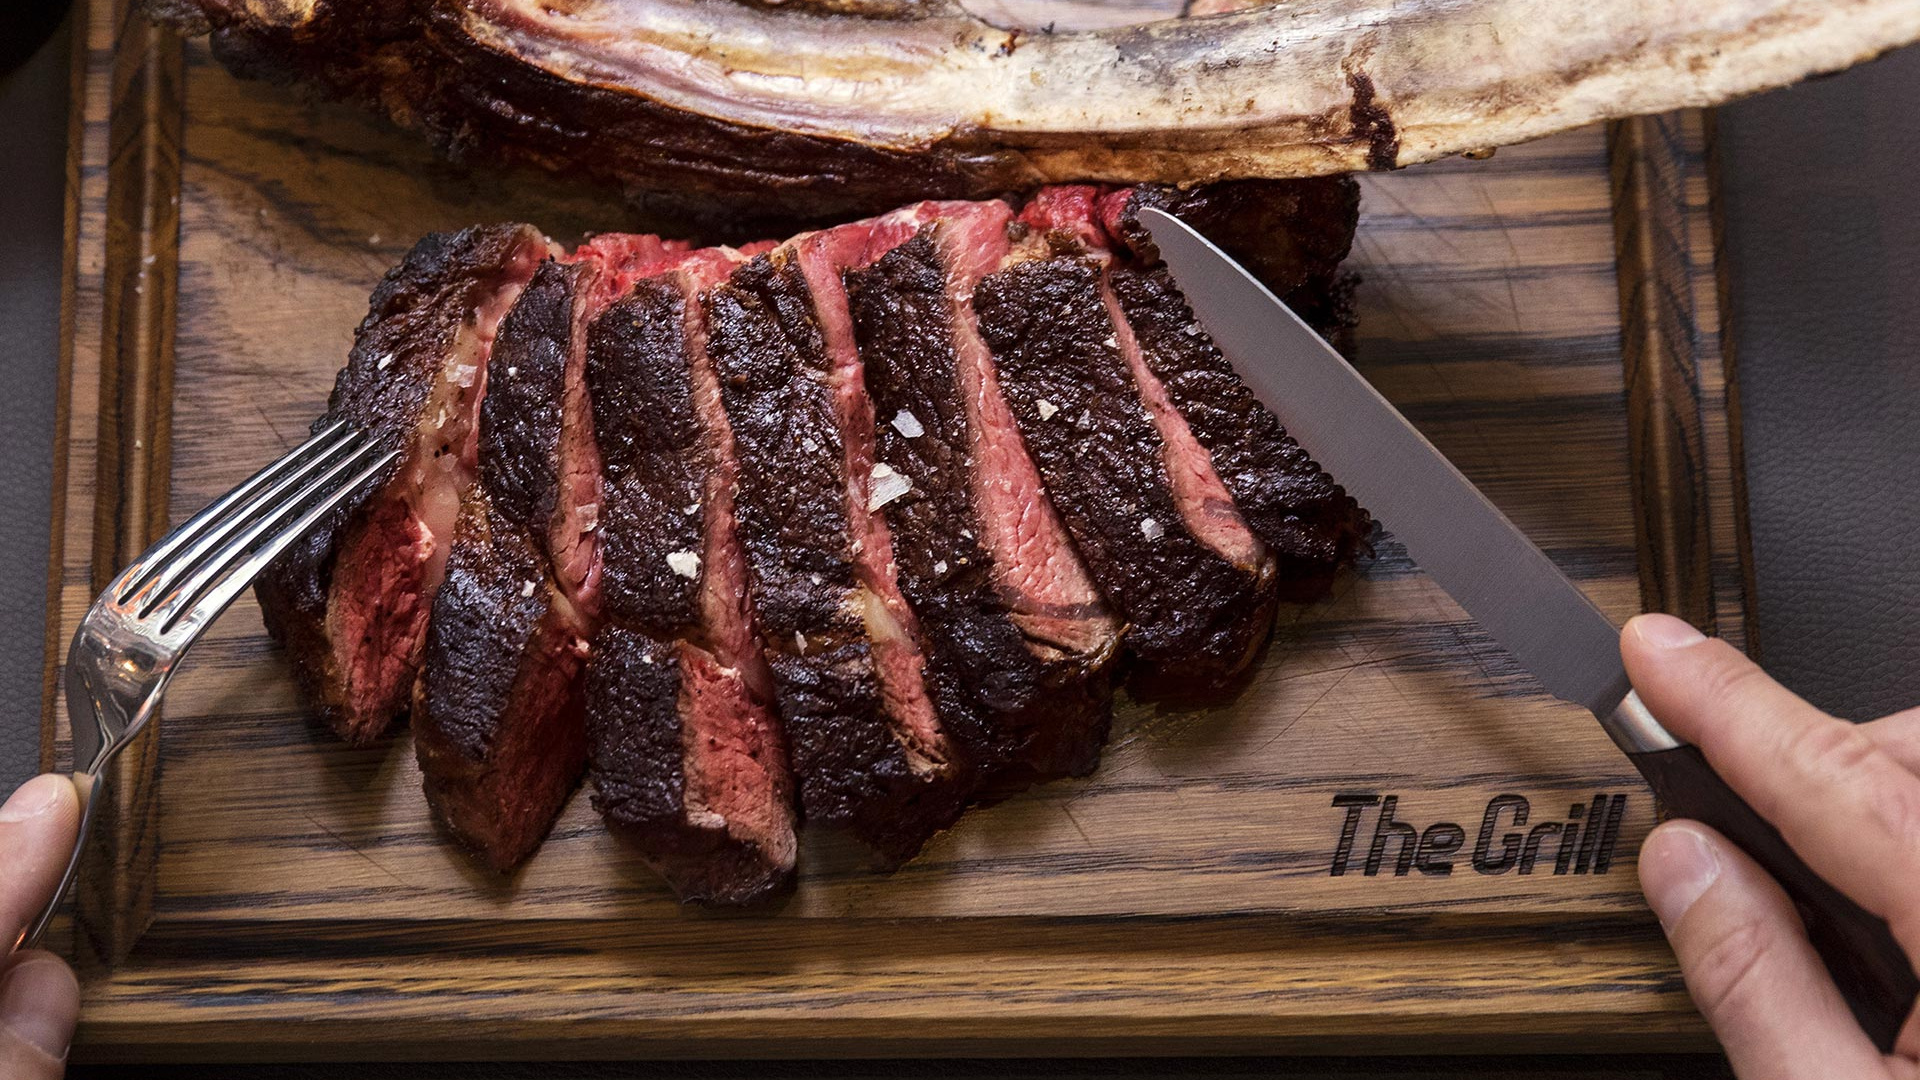 The Grill at McQueen medium rare tomahawk steak off the bone to share between two